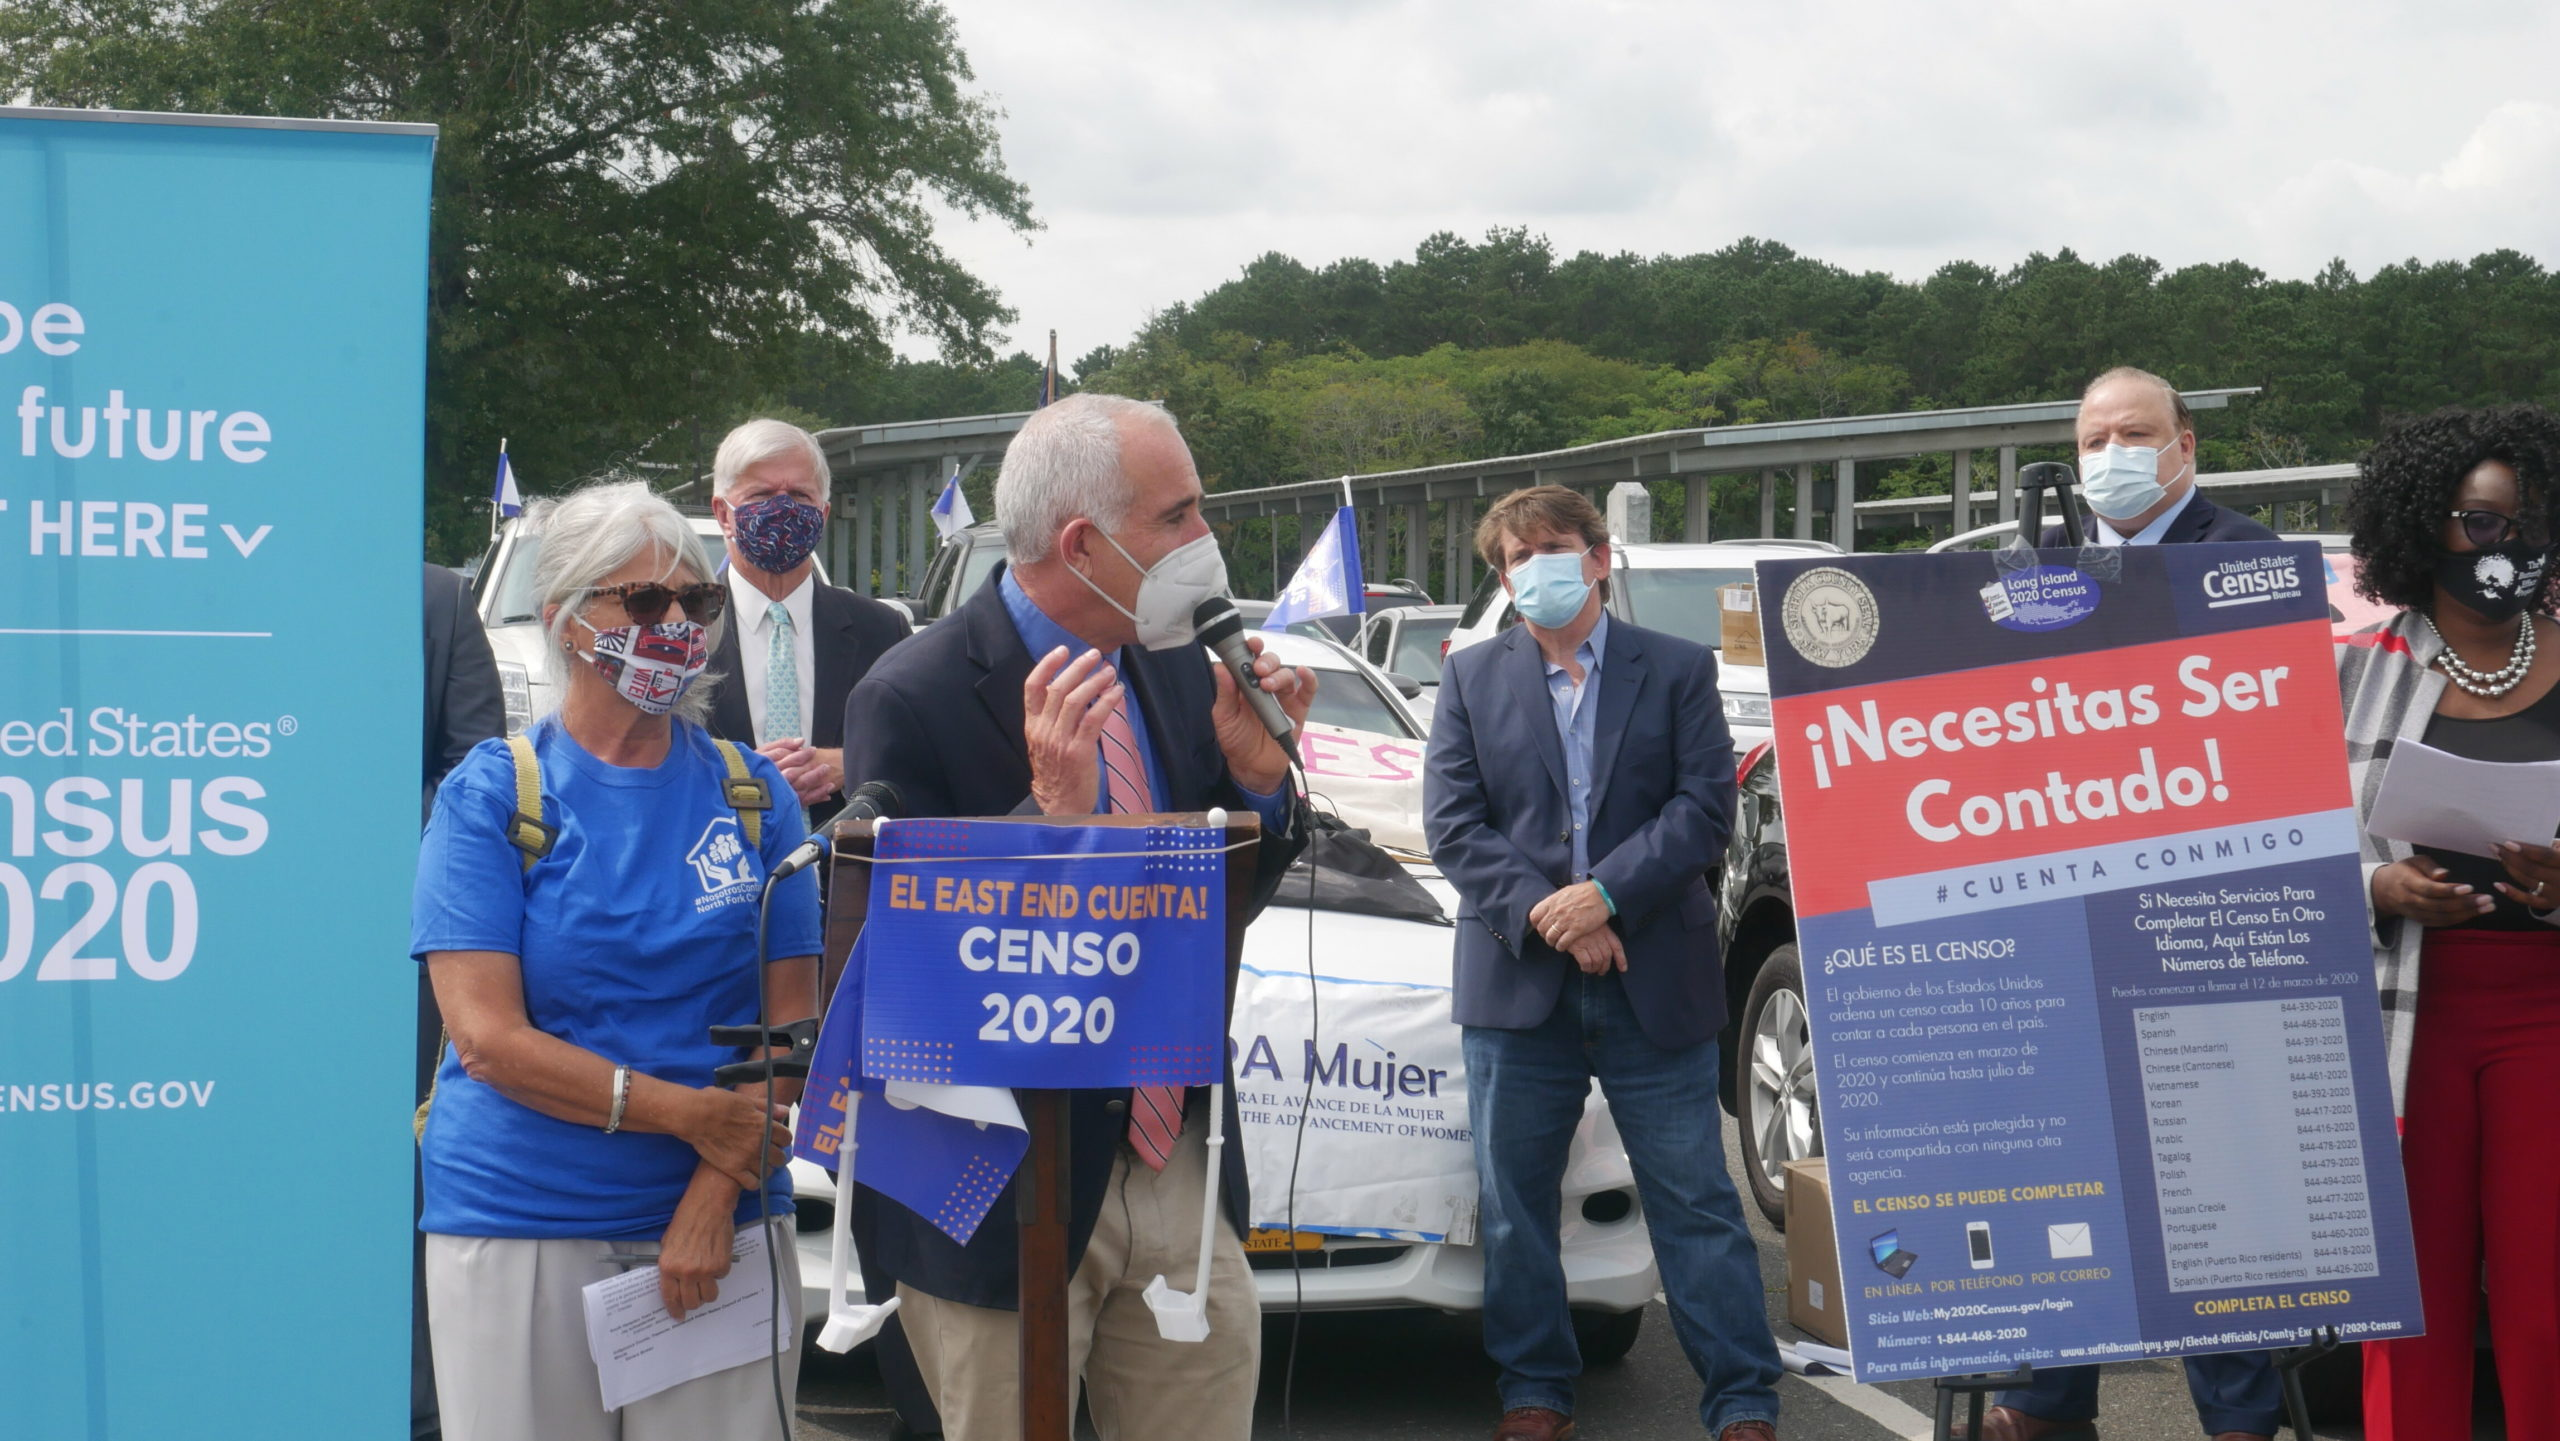 Southampton Town Supervisor Jay Schneiderman joined the rally.